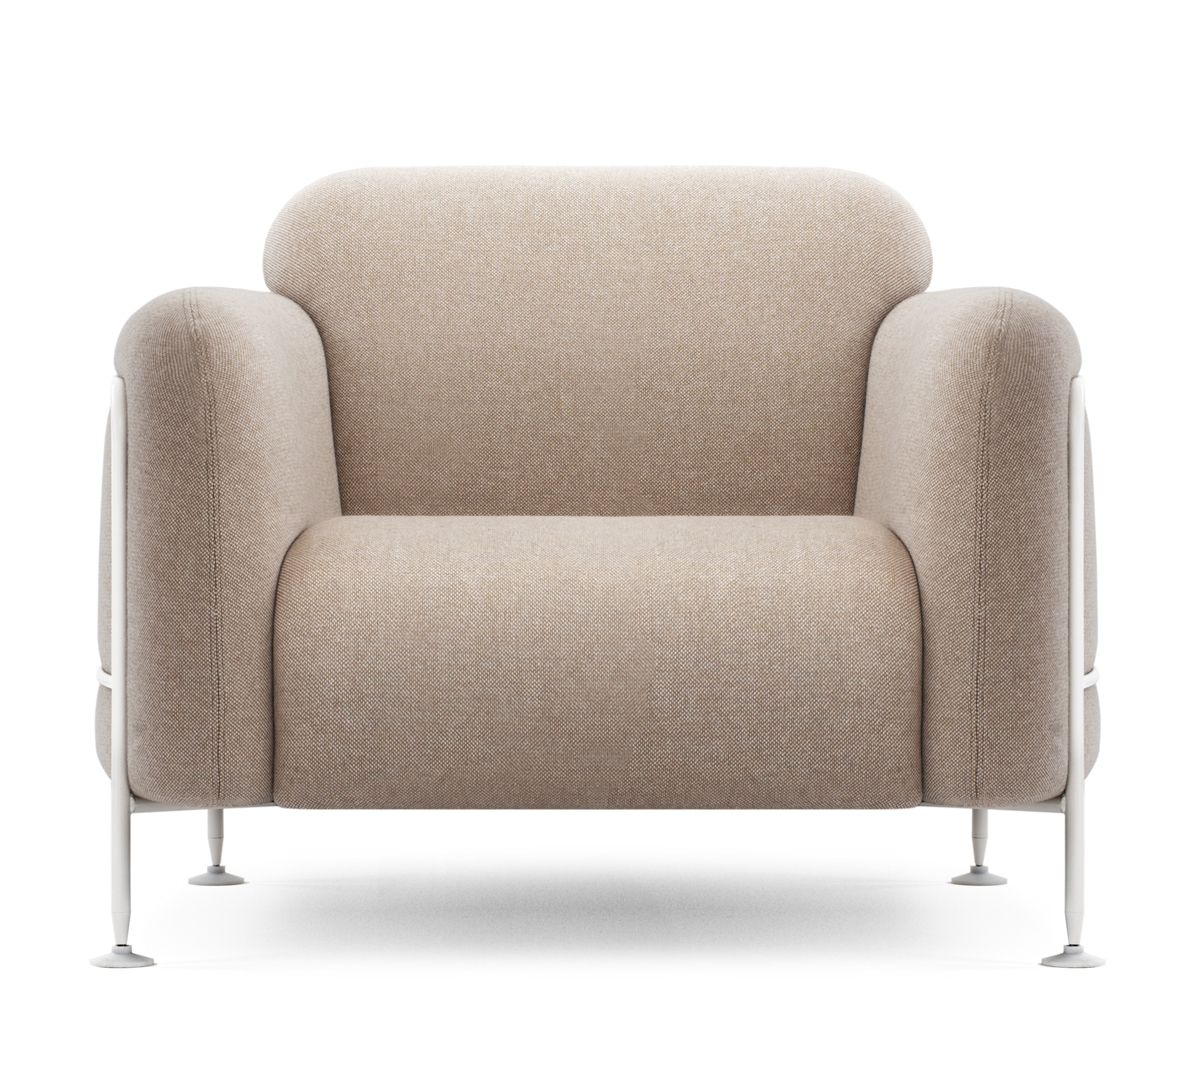 Mega Muebles Mega Armchair Produced By Massproductions Furniture